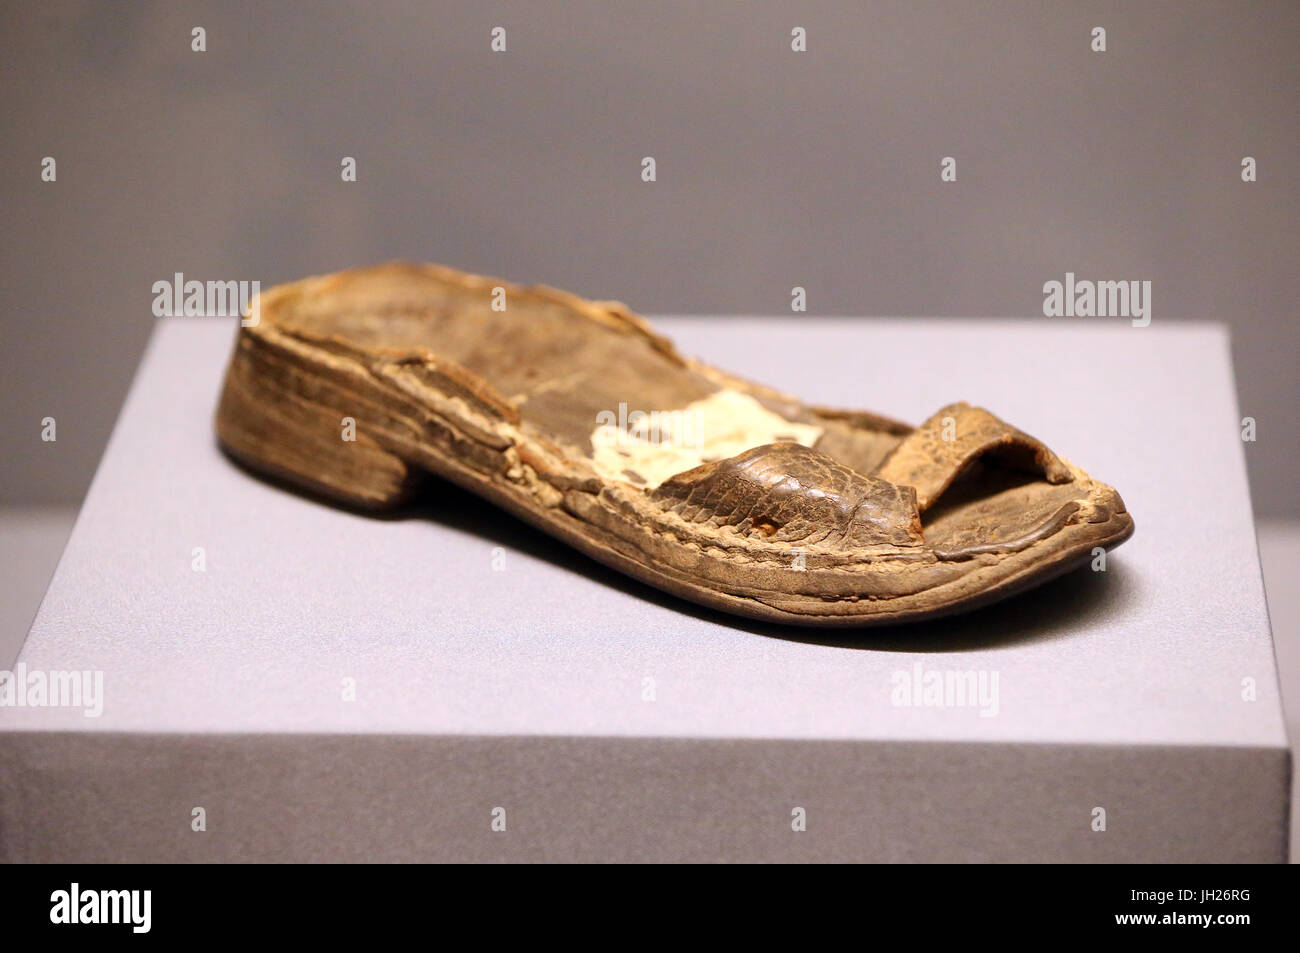 Asian Civlisations Museum.  Christianity in Asia: Sacred Art and Visual Splendour. Sole of the boot of Saint Francis - Stock Image